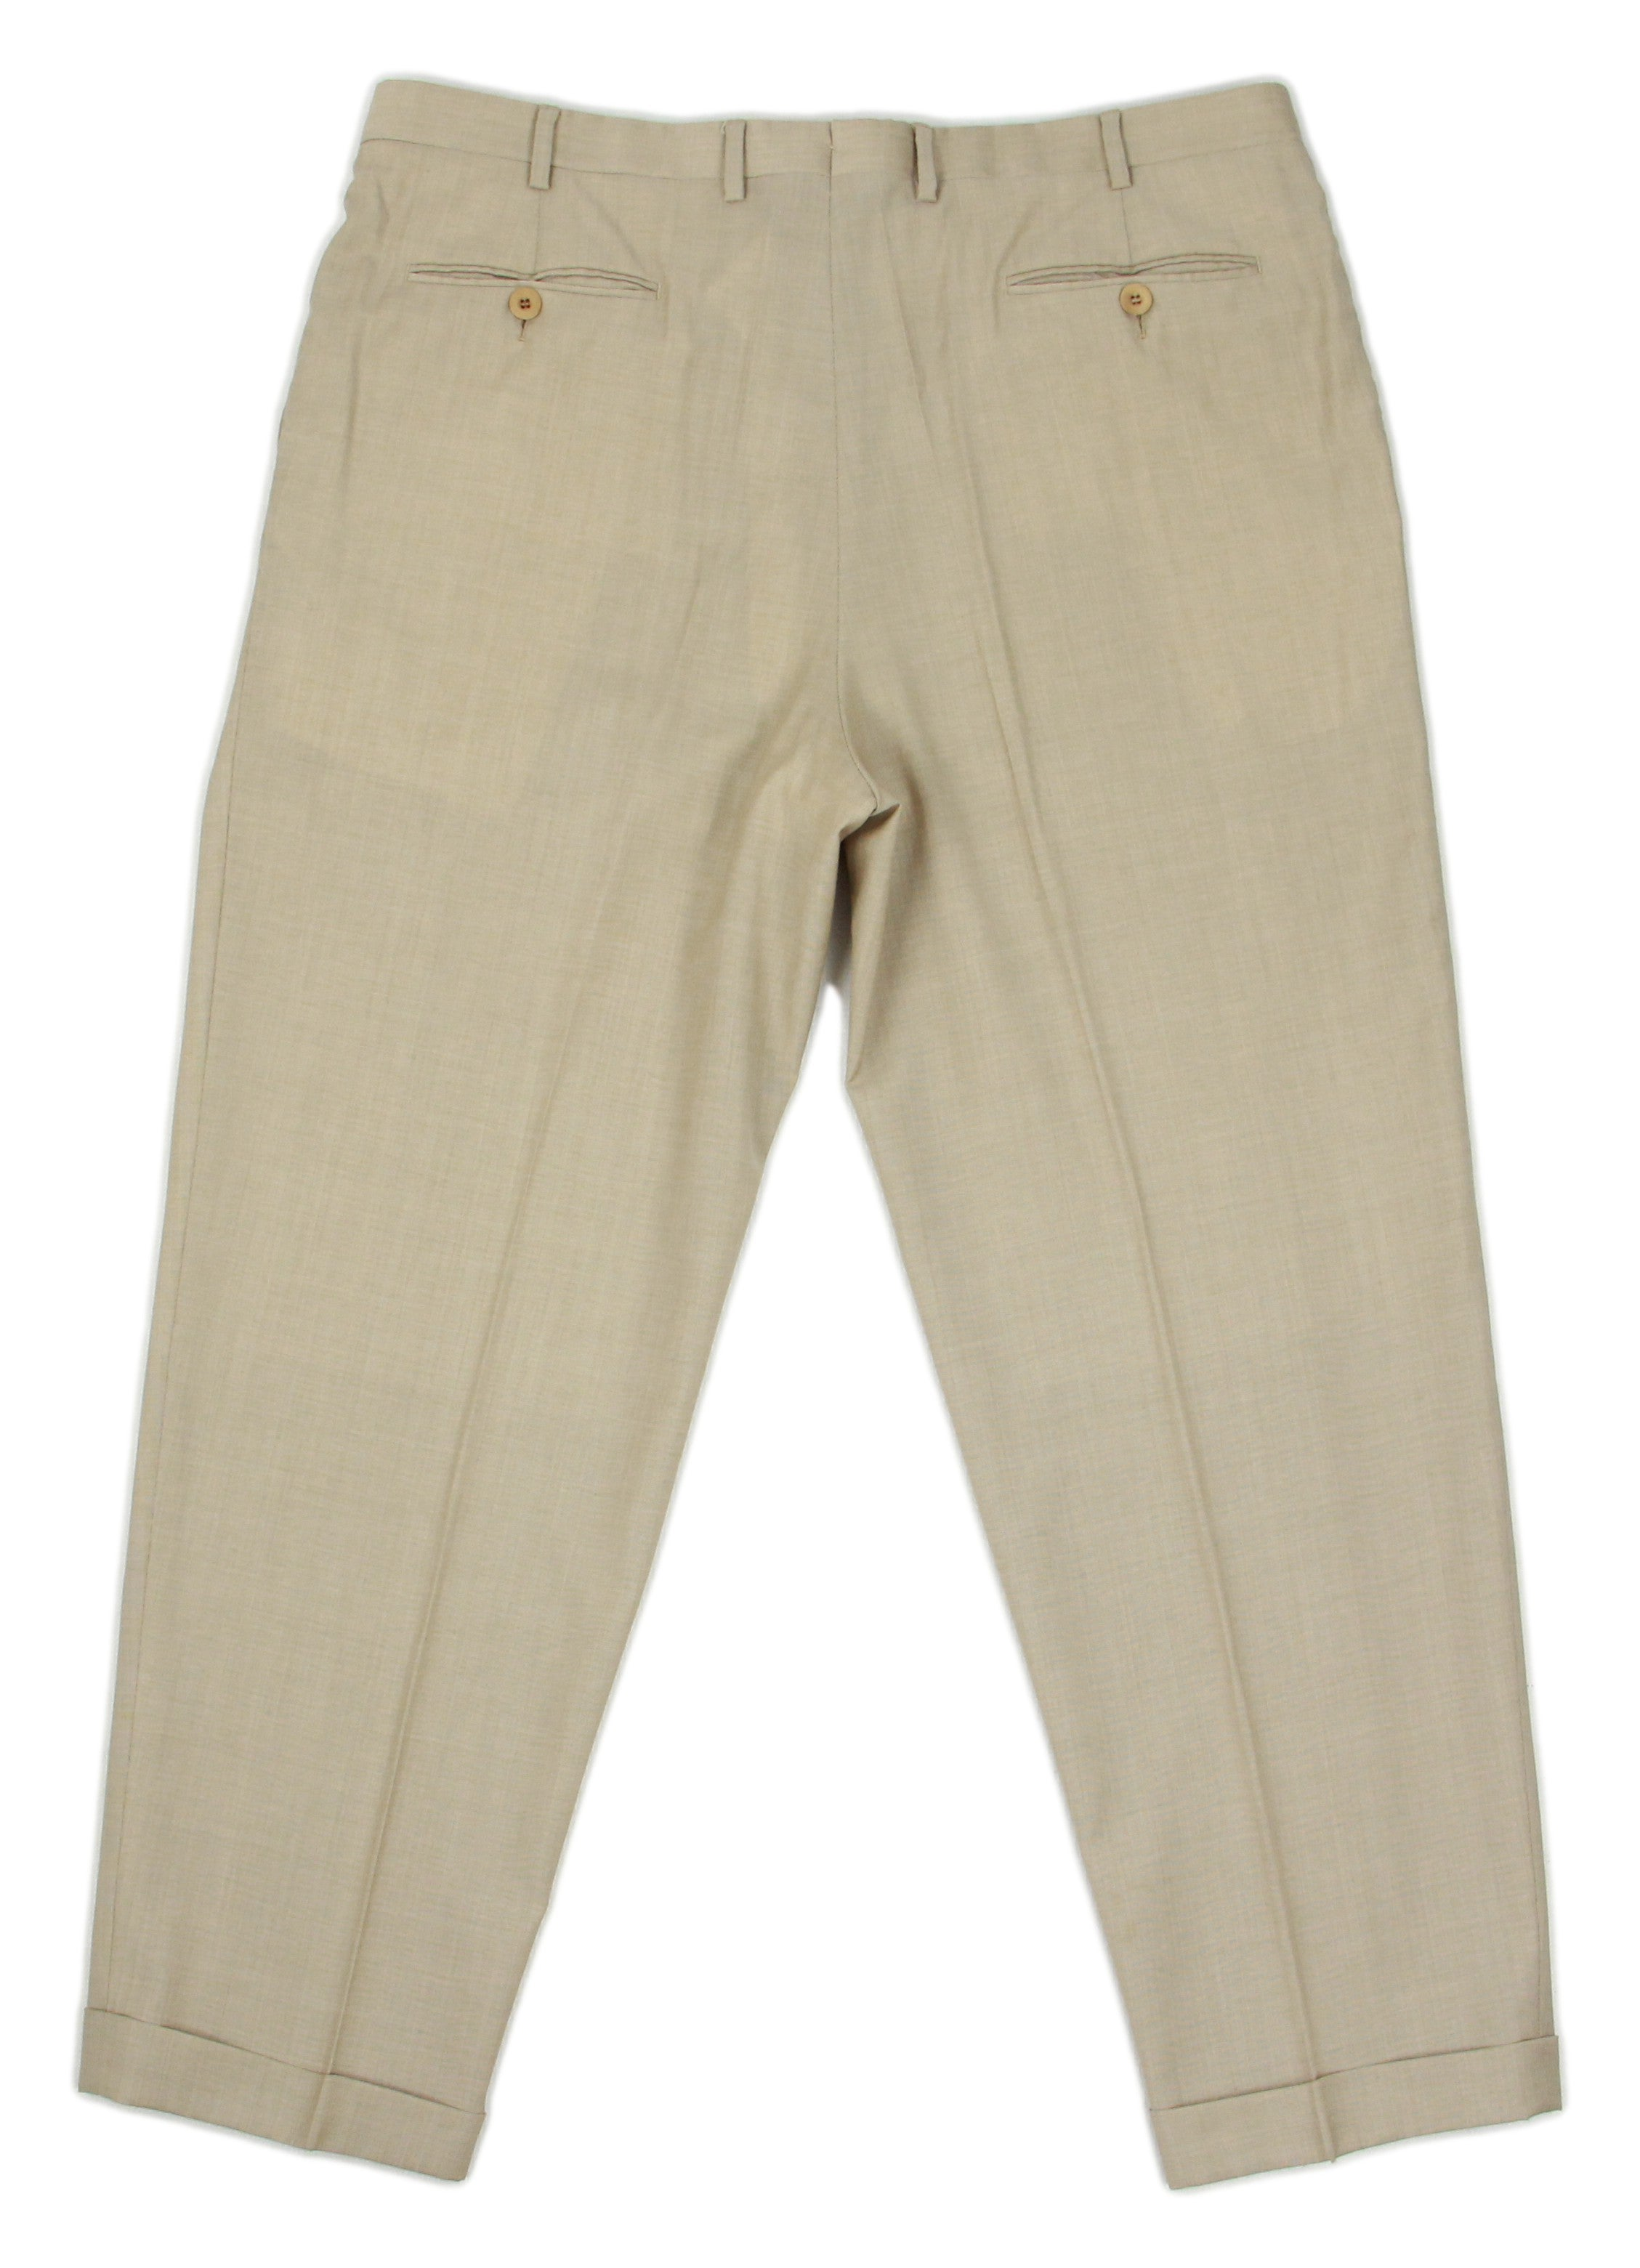 BRIONI Lightweight Single Pleated Pants Size EU 57R, Waist 38""